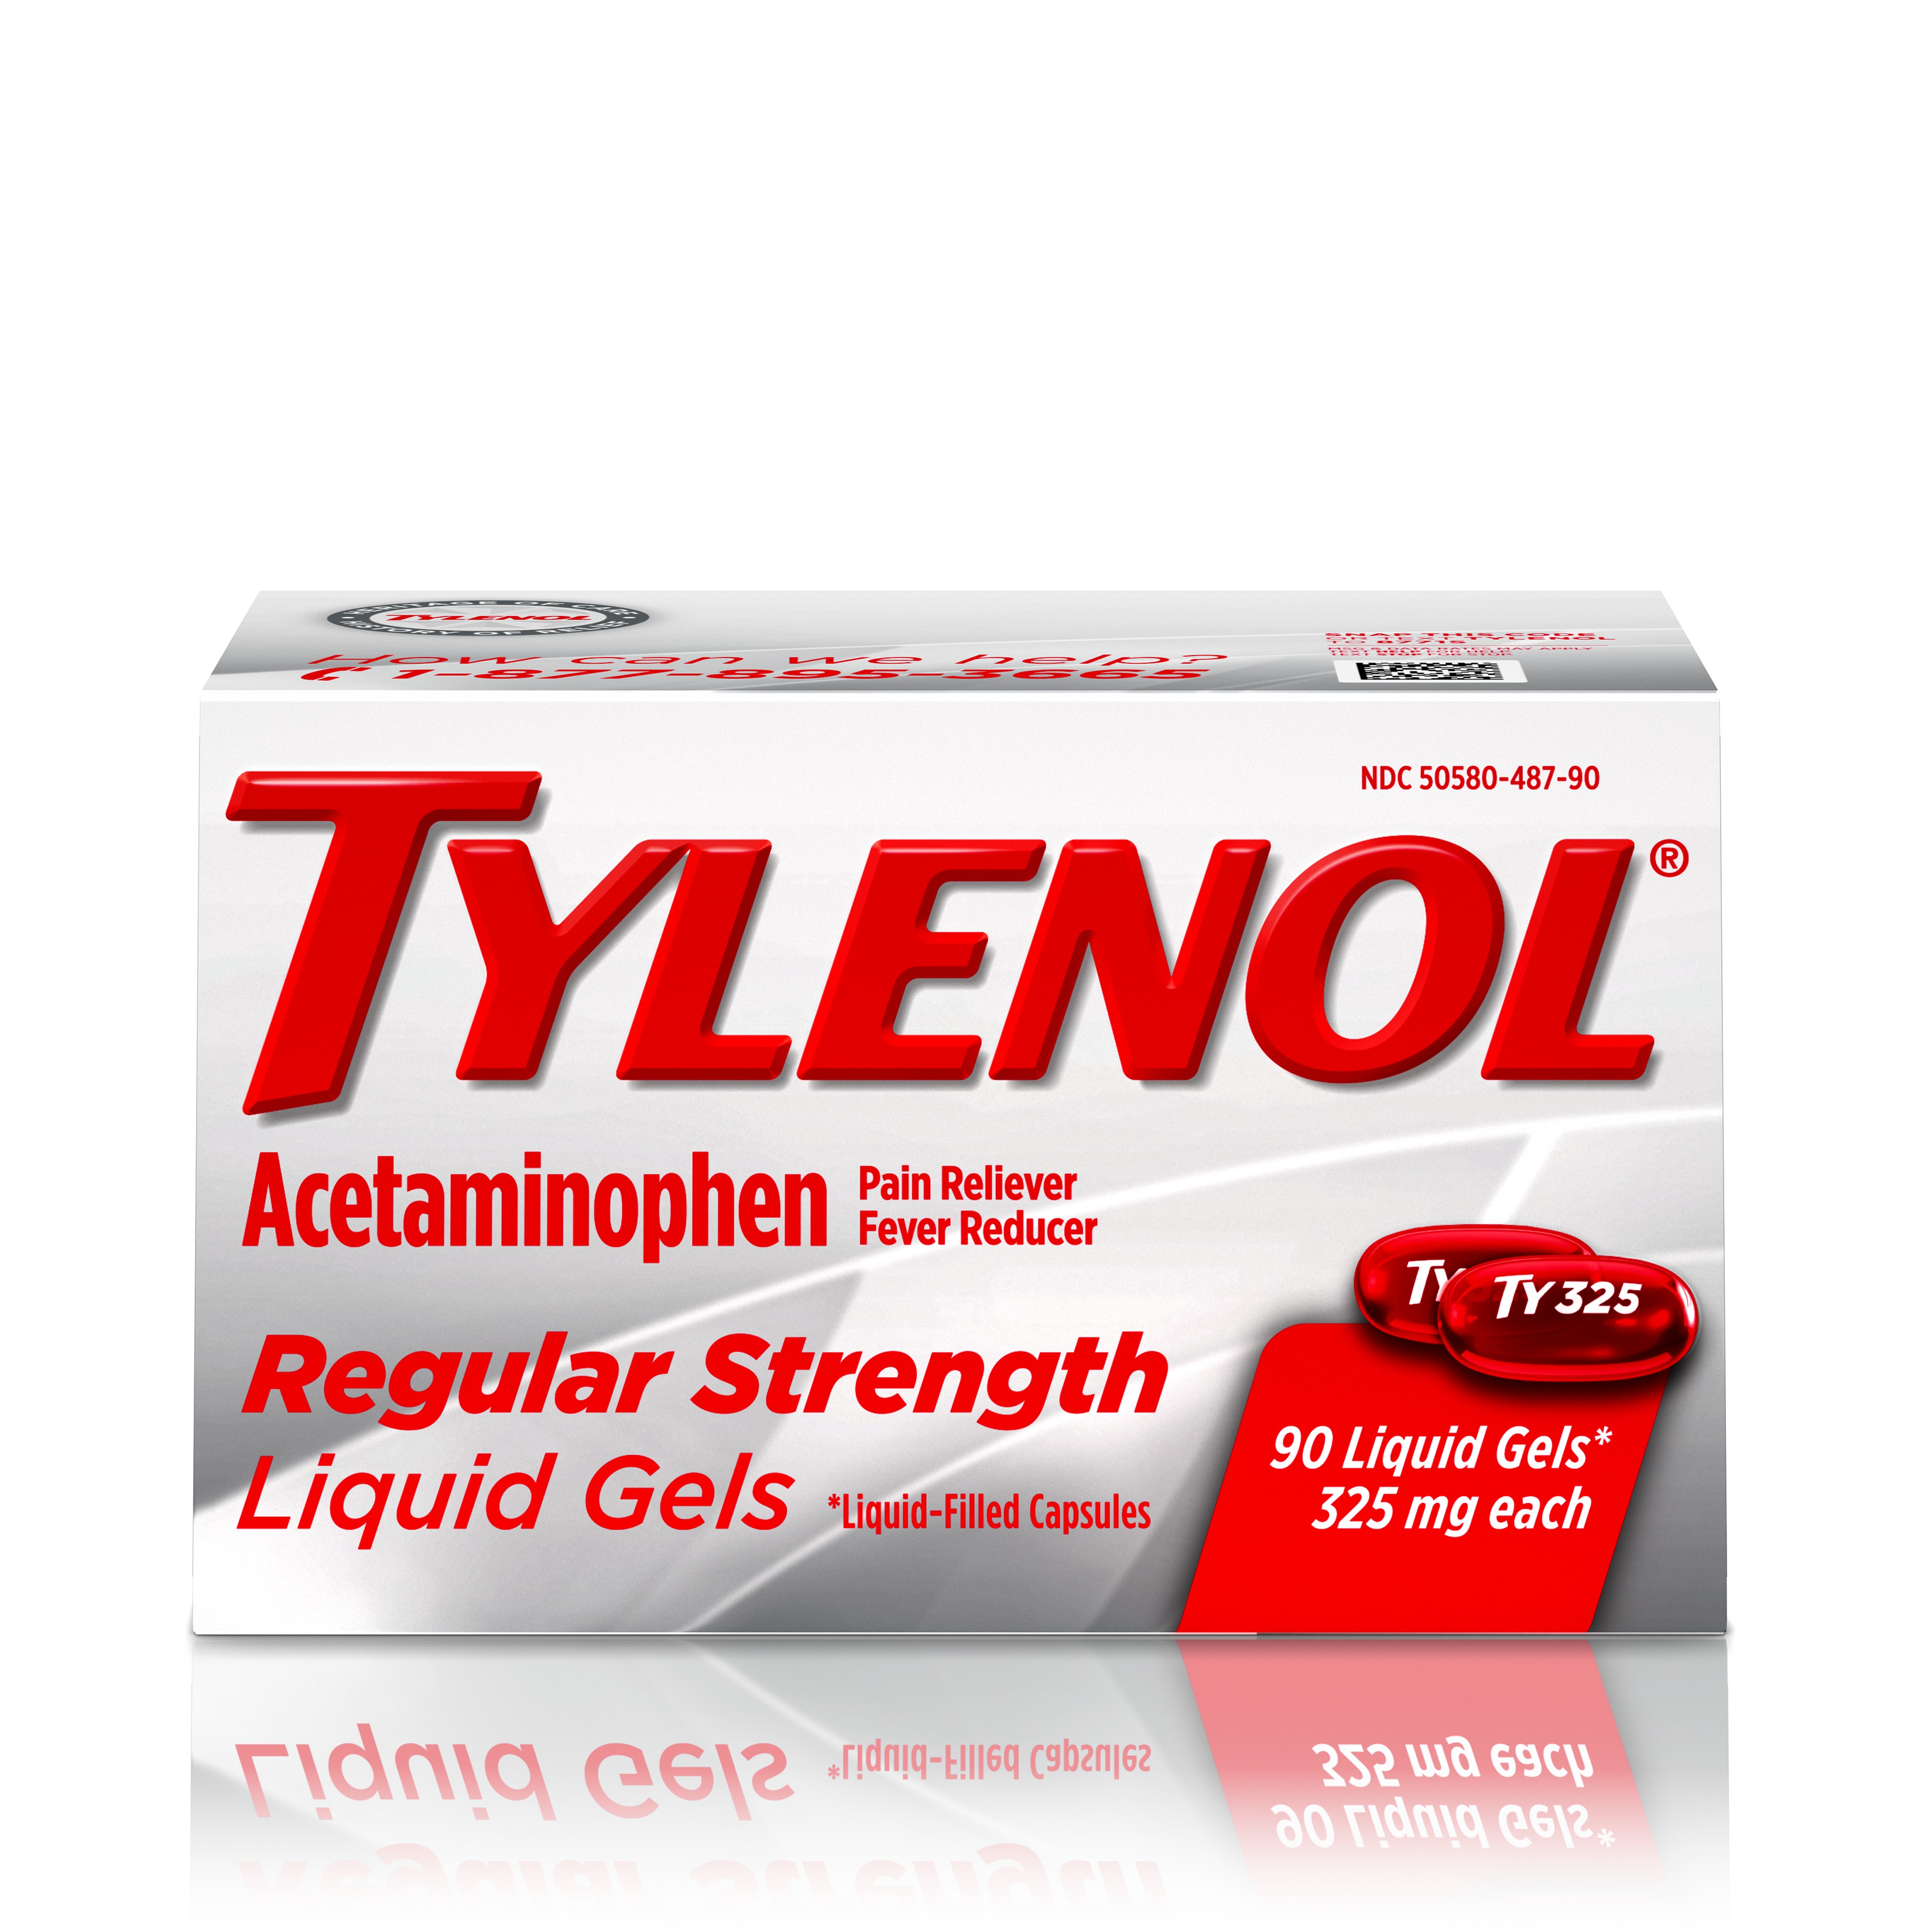 TYLENOL® Regular Strength Liquid Gels, Fever Reducer and Pain Reliever, 325 mg, 90 ct.